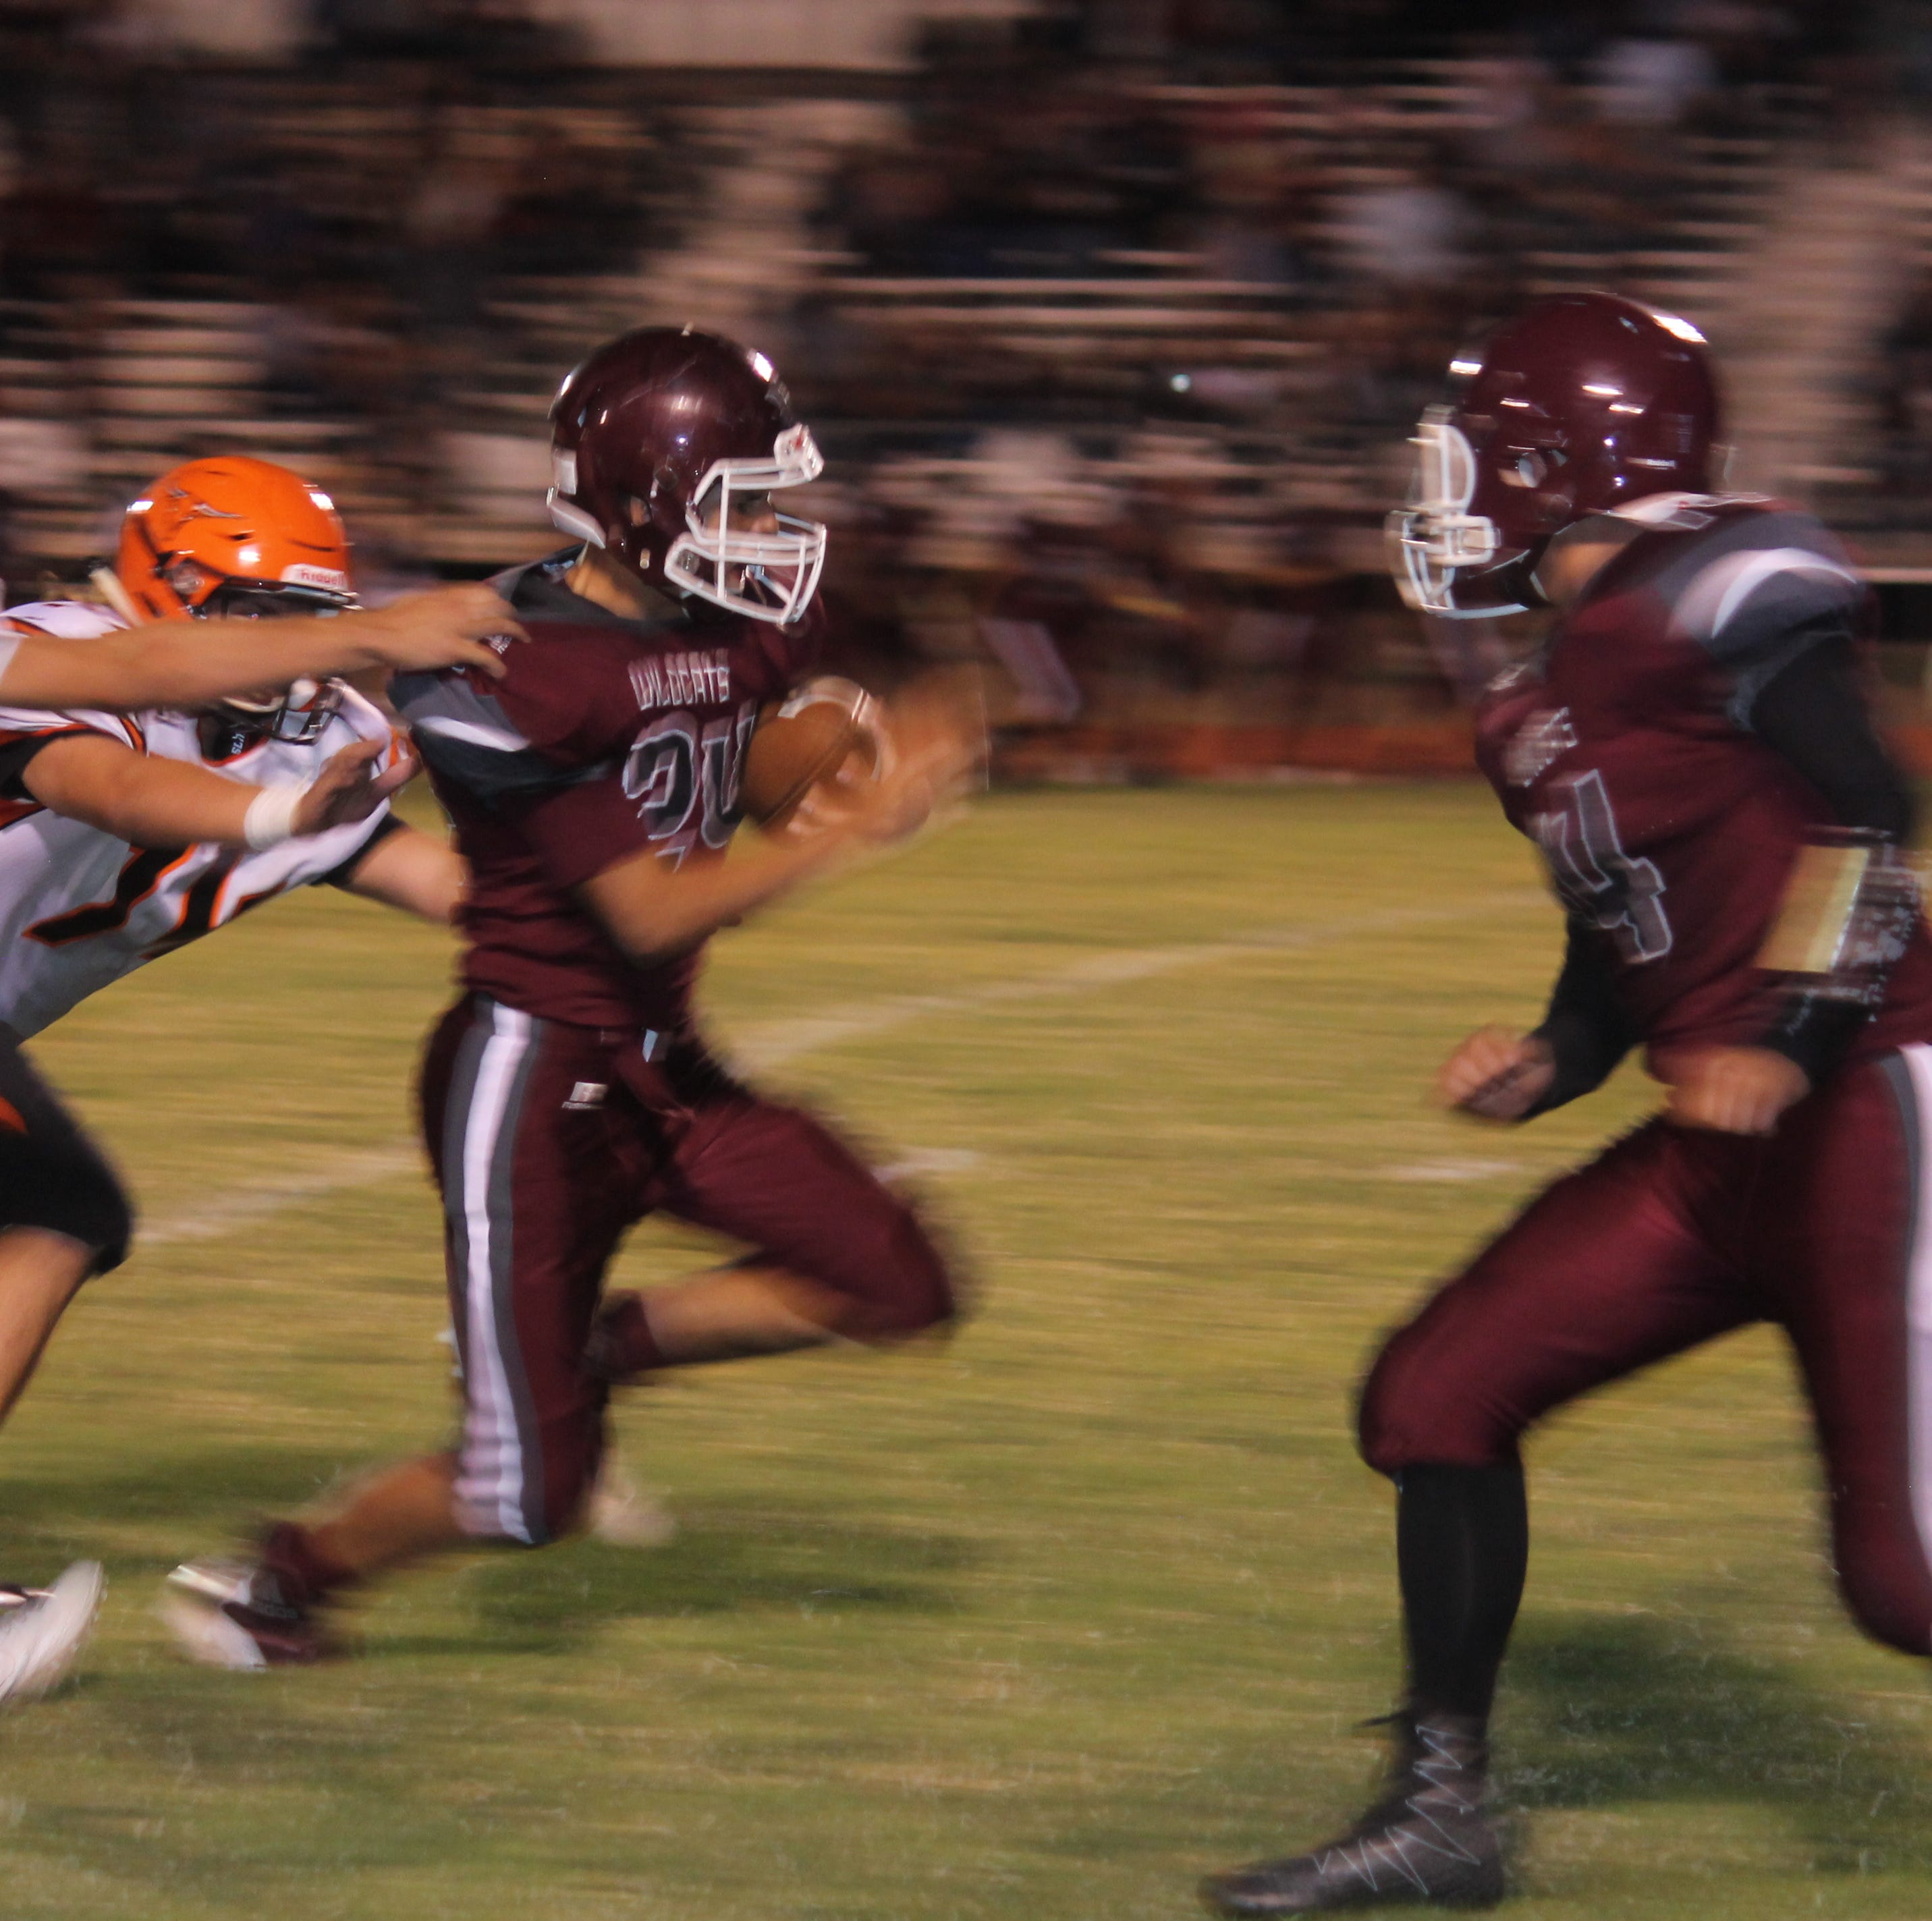 Tularosa Wildcats tame Lordsburg Mavericks, 36-24